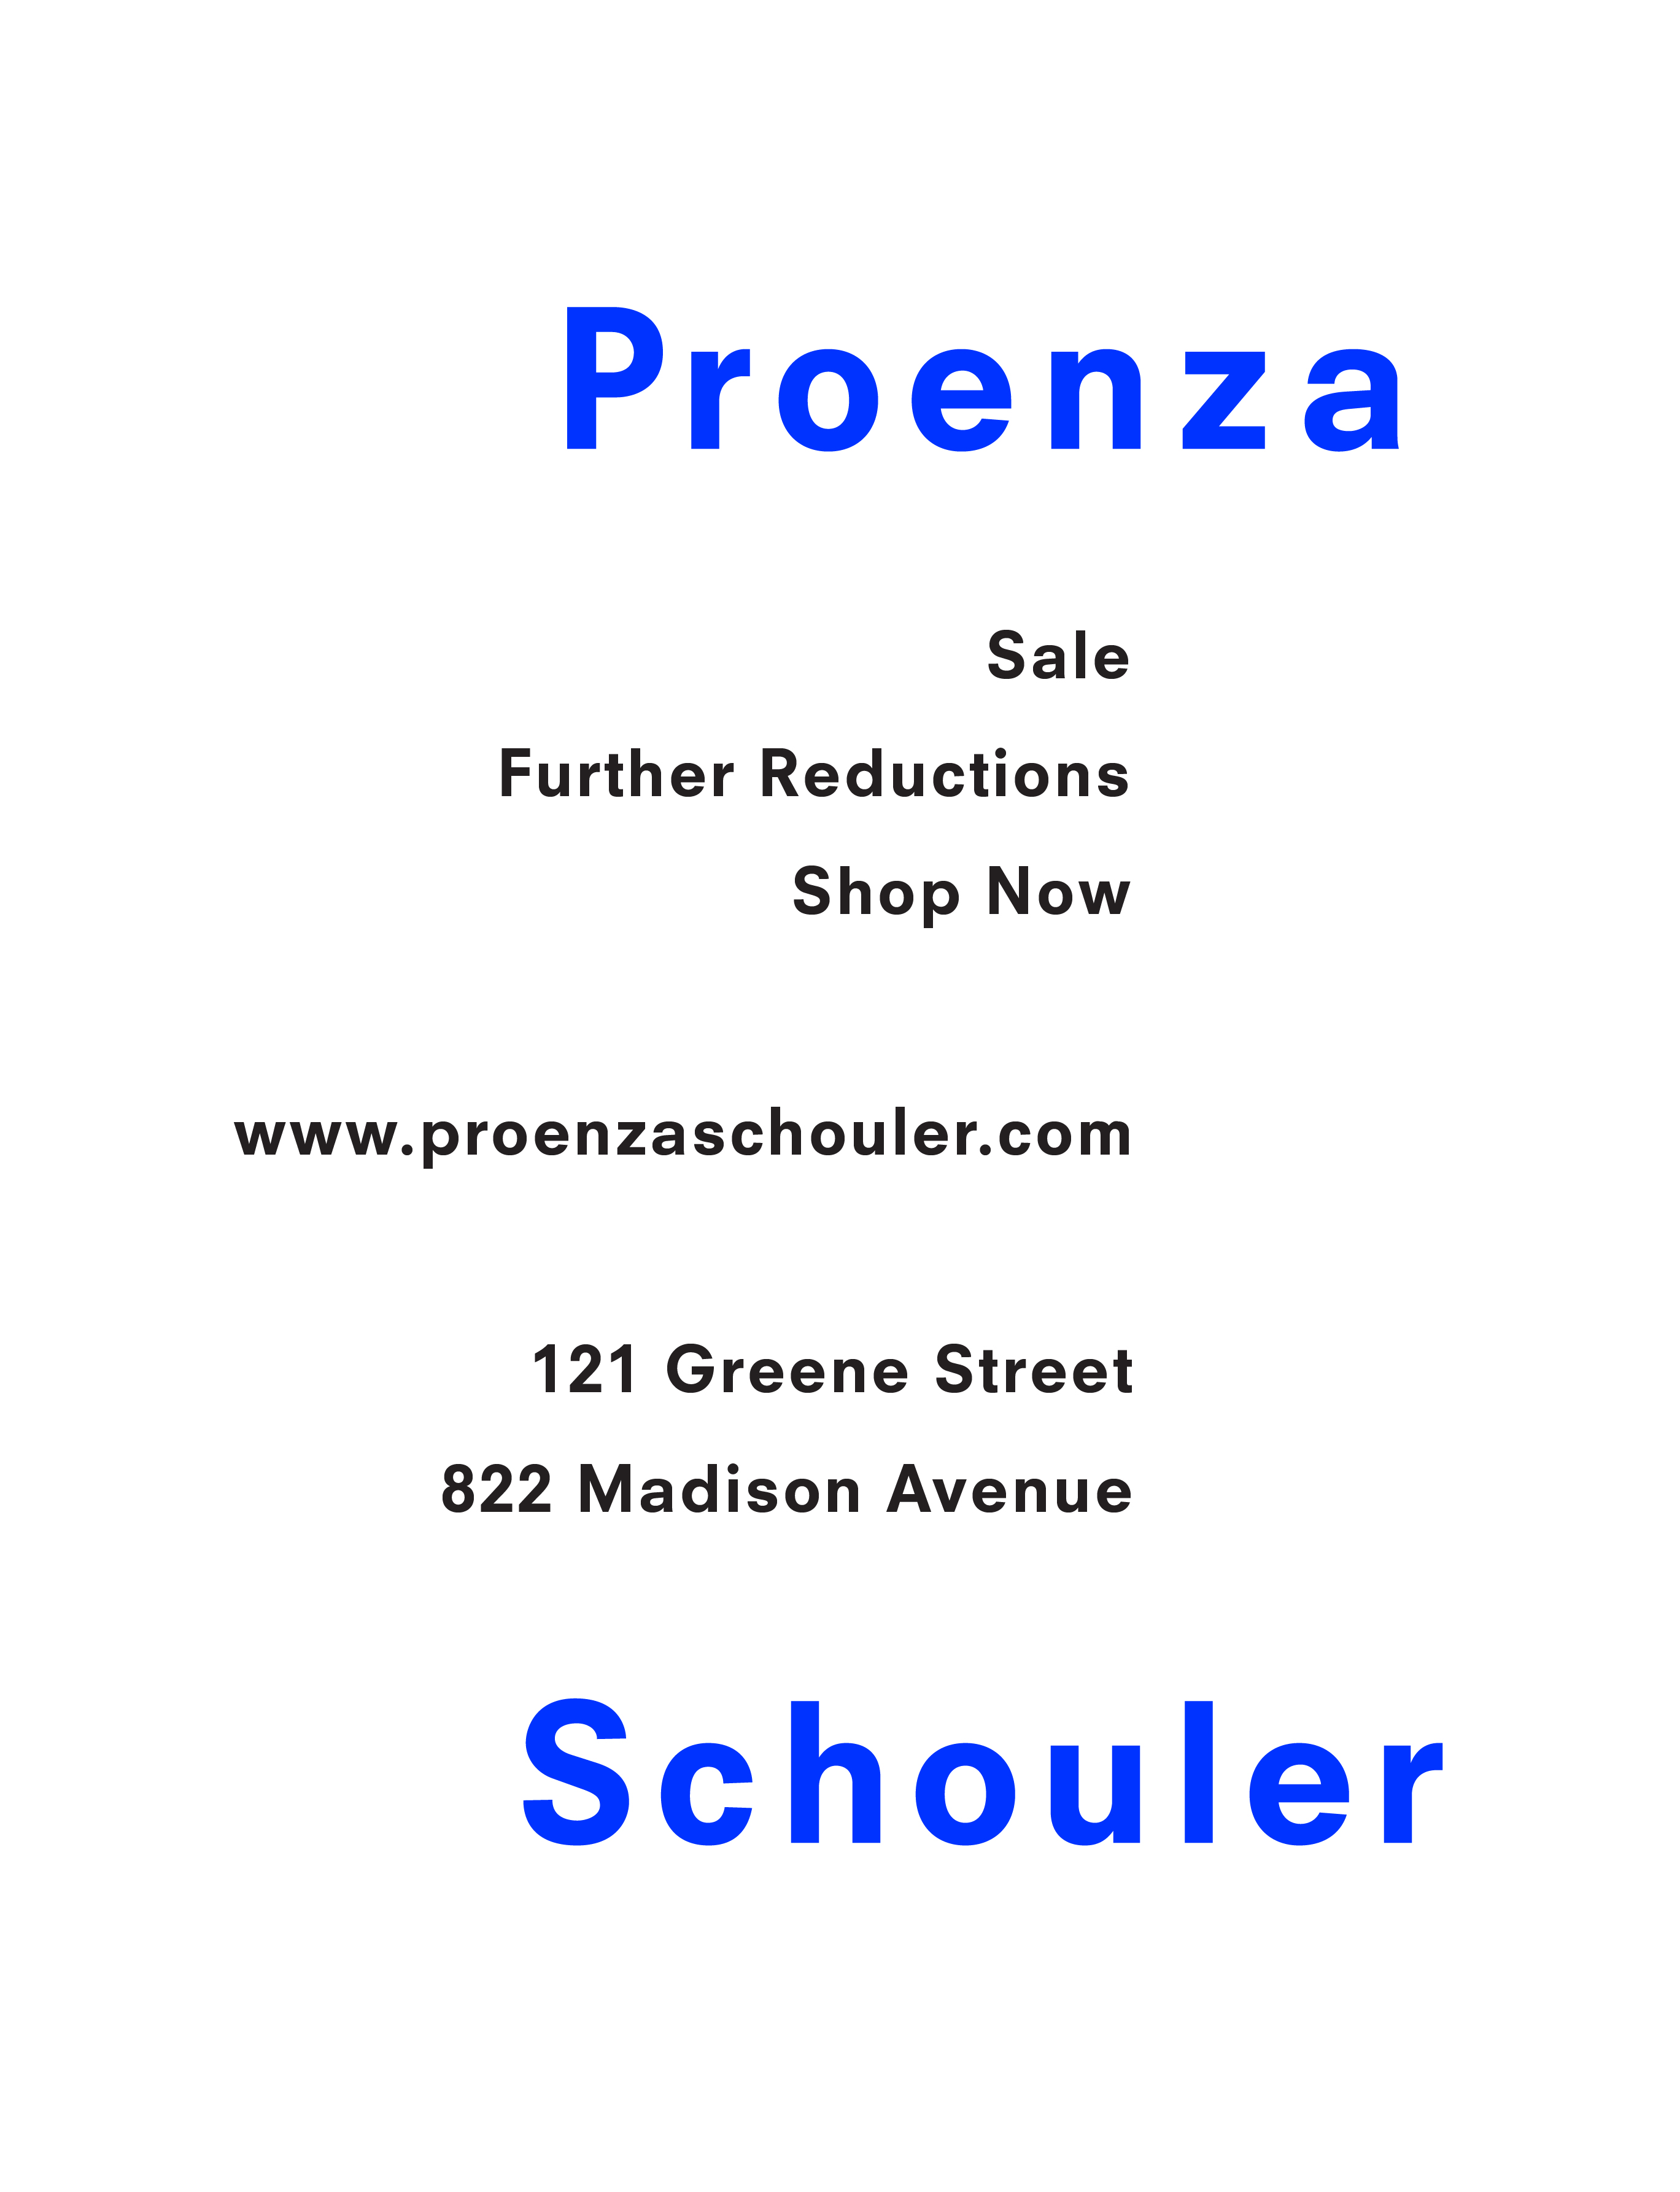 Spring 2017 Sale - Further Reductions Up to 65% Off